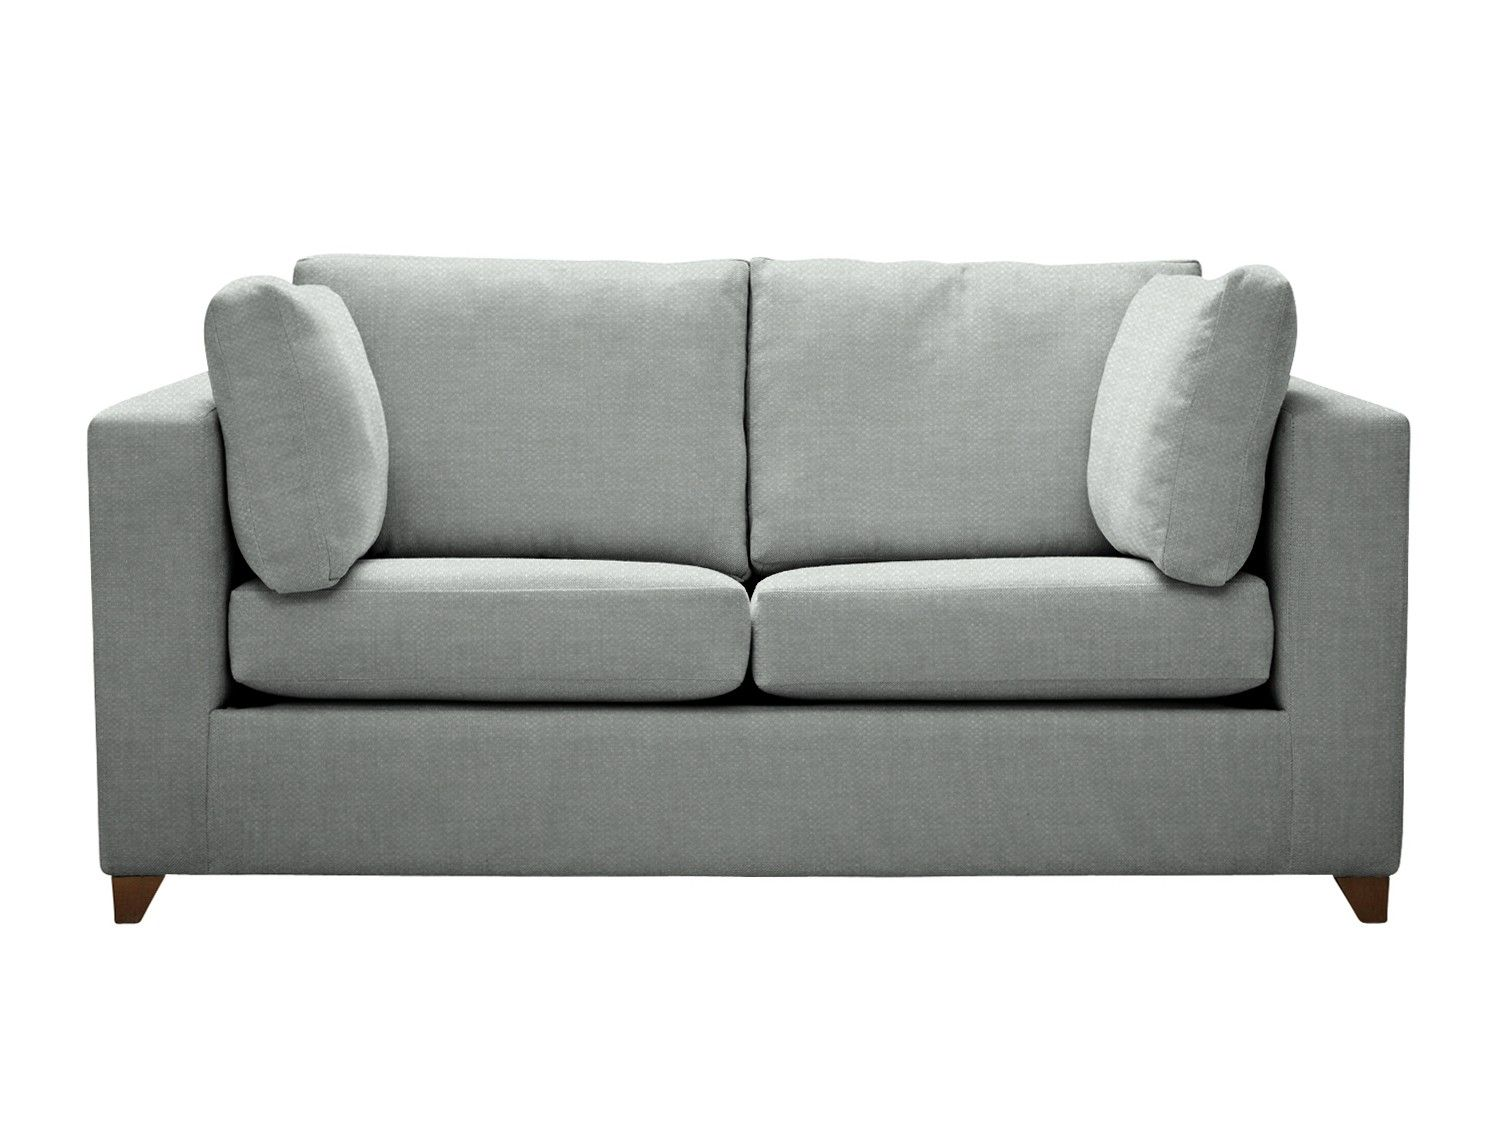 Pleasing The Somerton 3 Seater Sofa Bed Willow Hall My Flat Caraccident5 Cool Chair Designs And Ideas Caraccident5Info